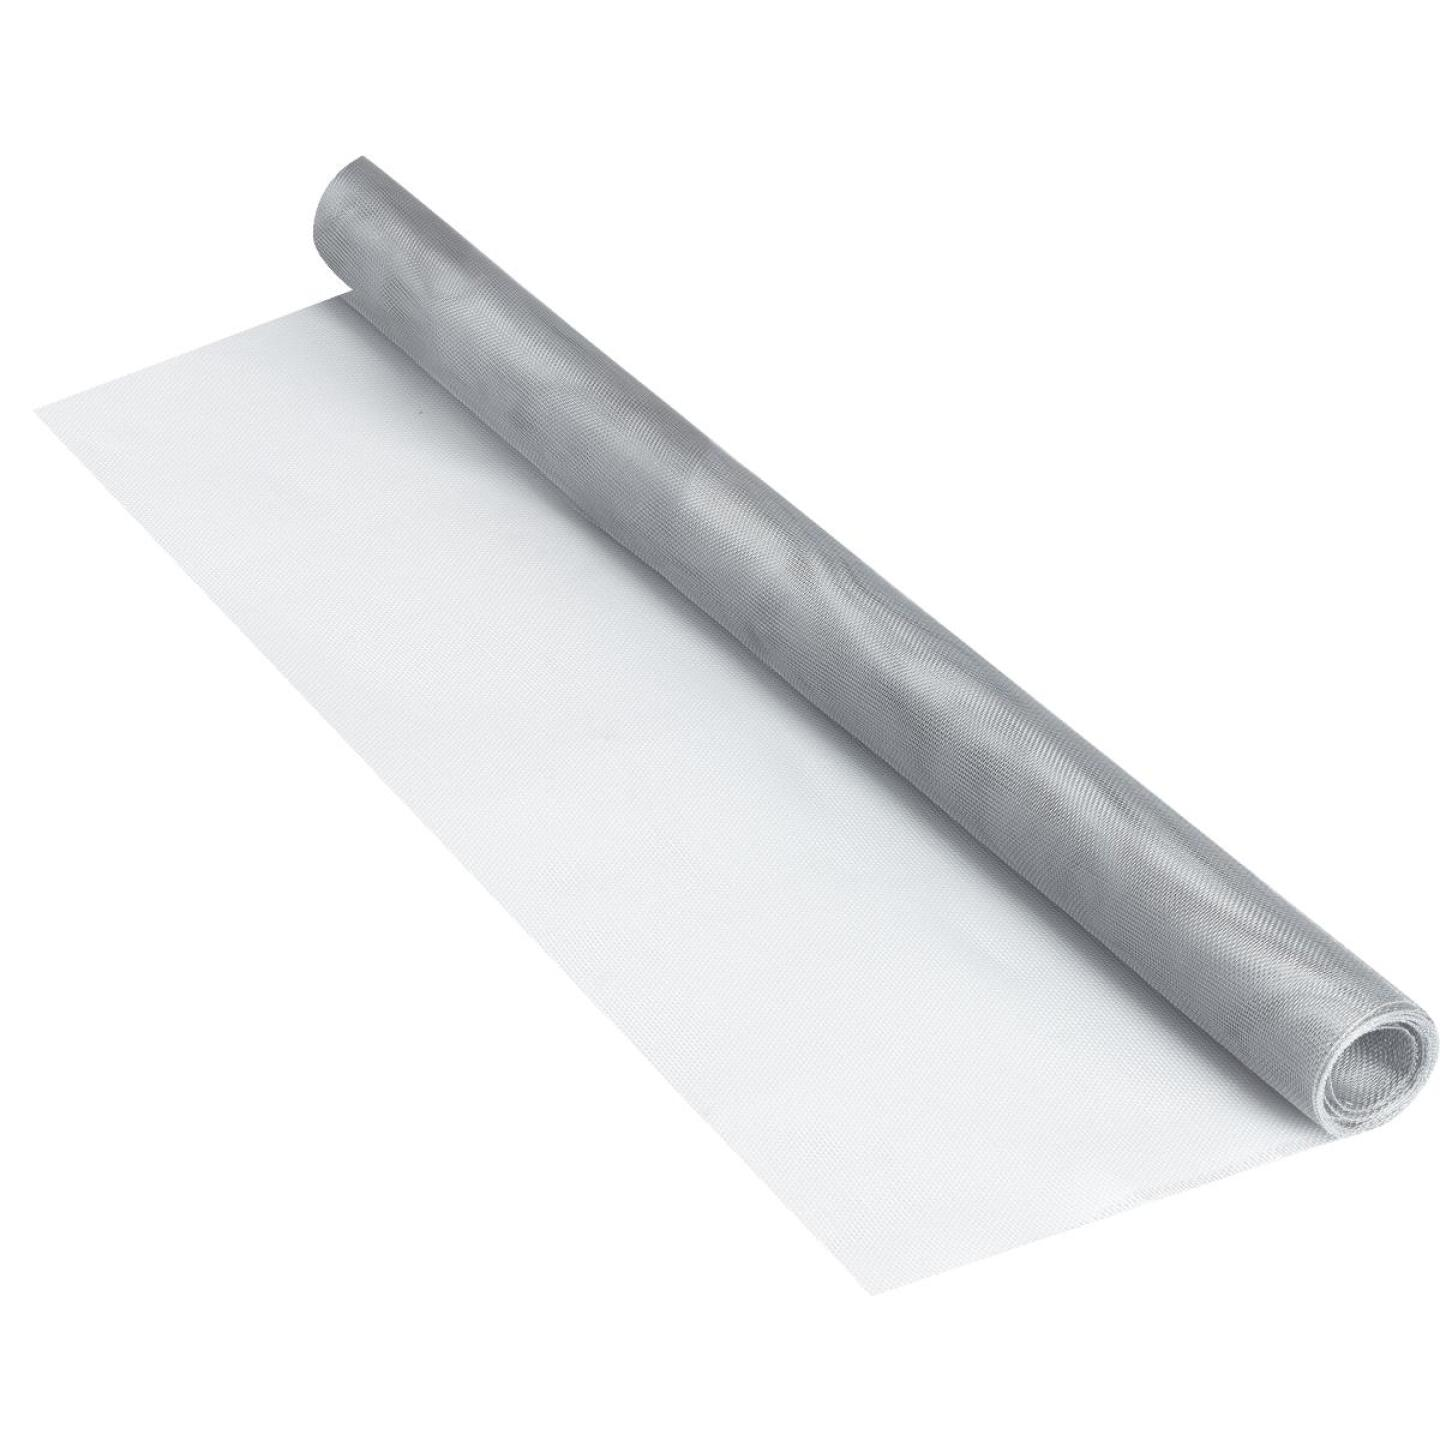 Phifer 30 In. x 84 In. Brite Aluminum Screen Ready Rolls Image 3